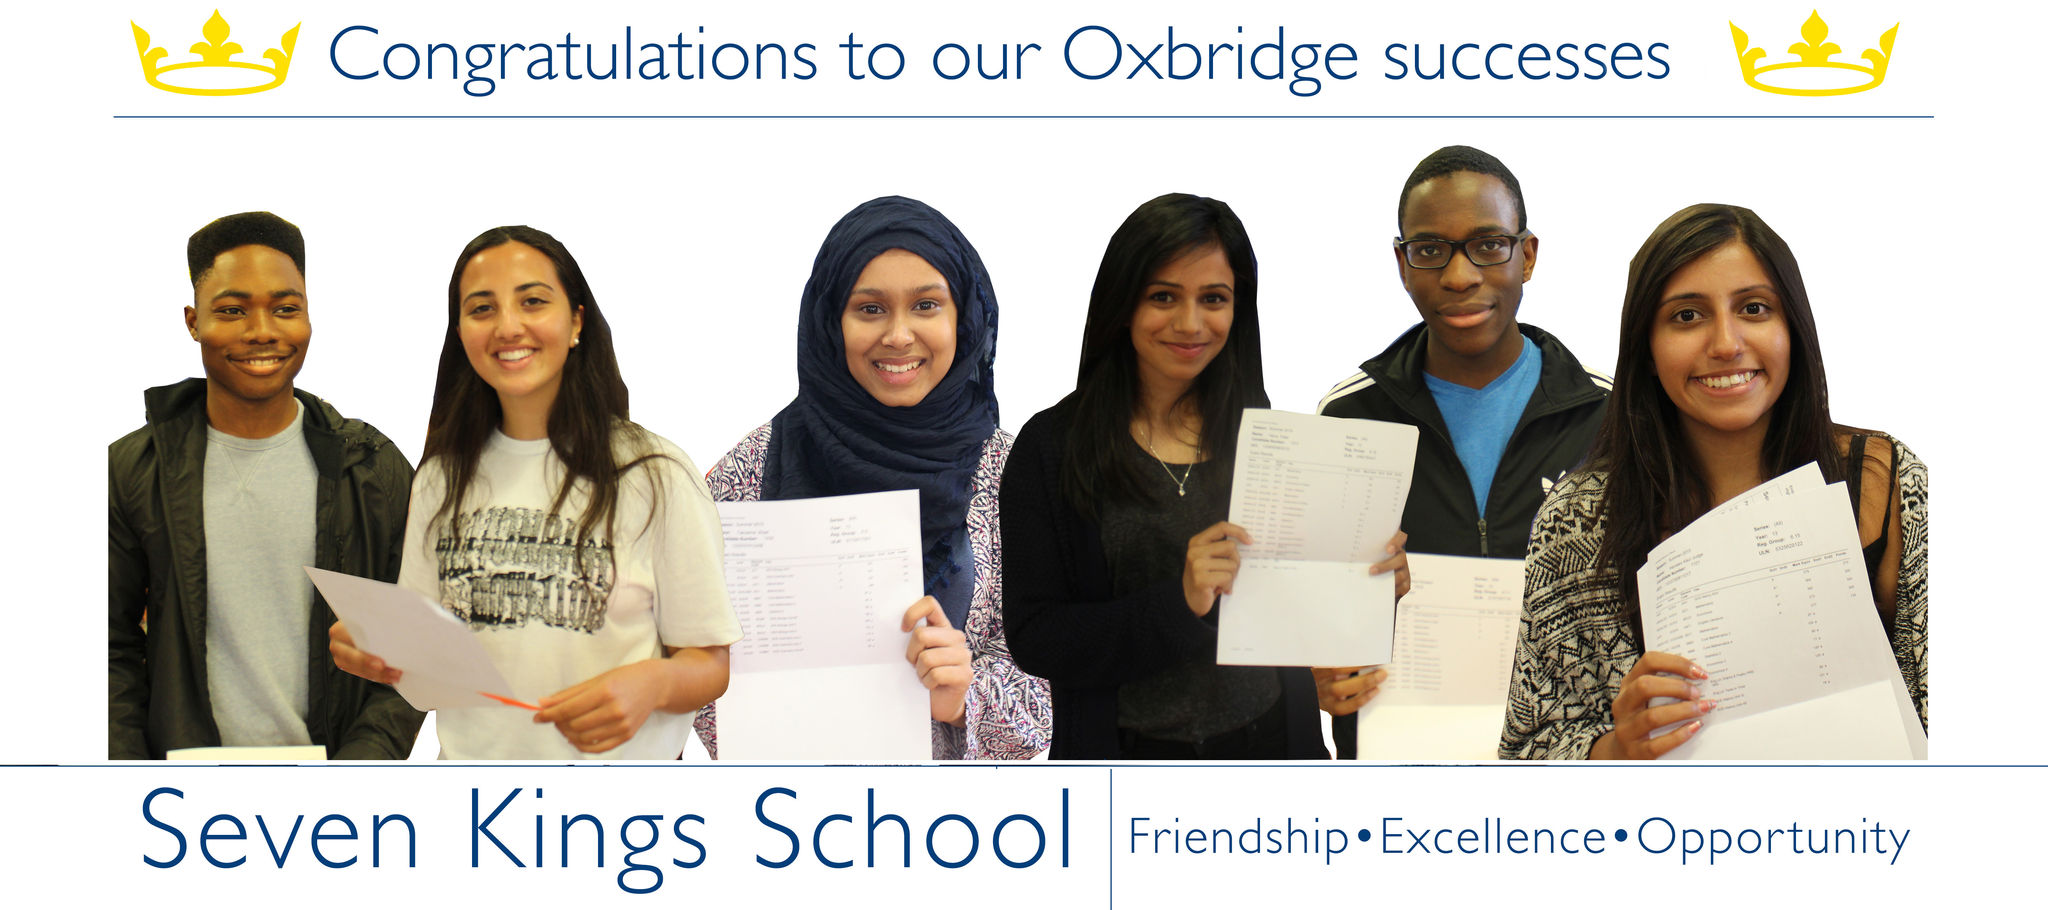 Oxbridge success 2015